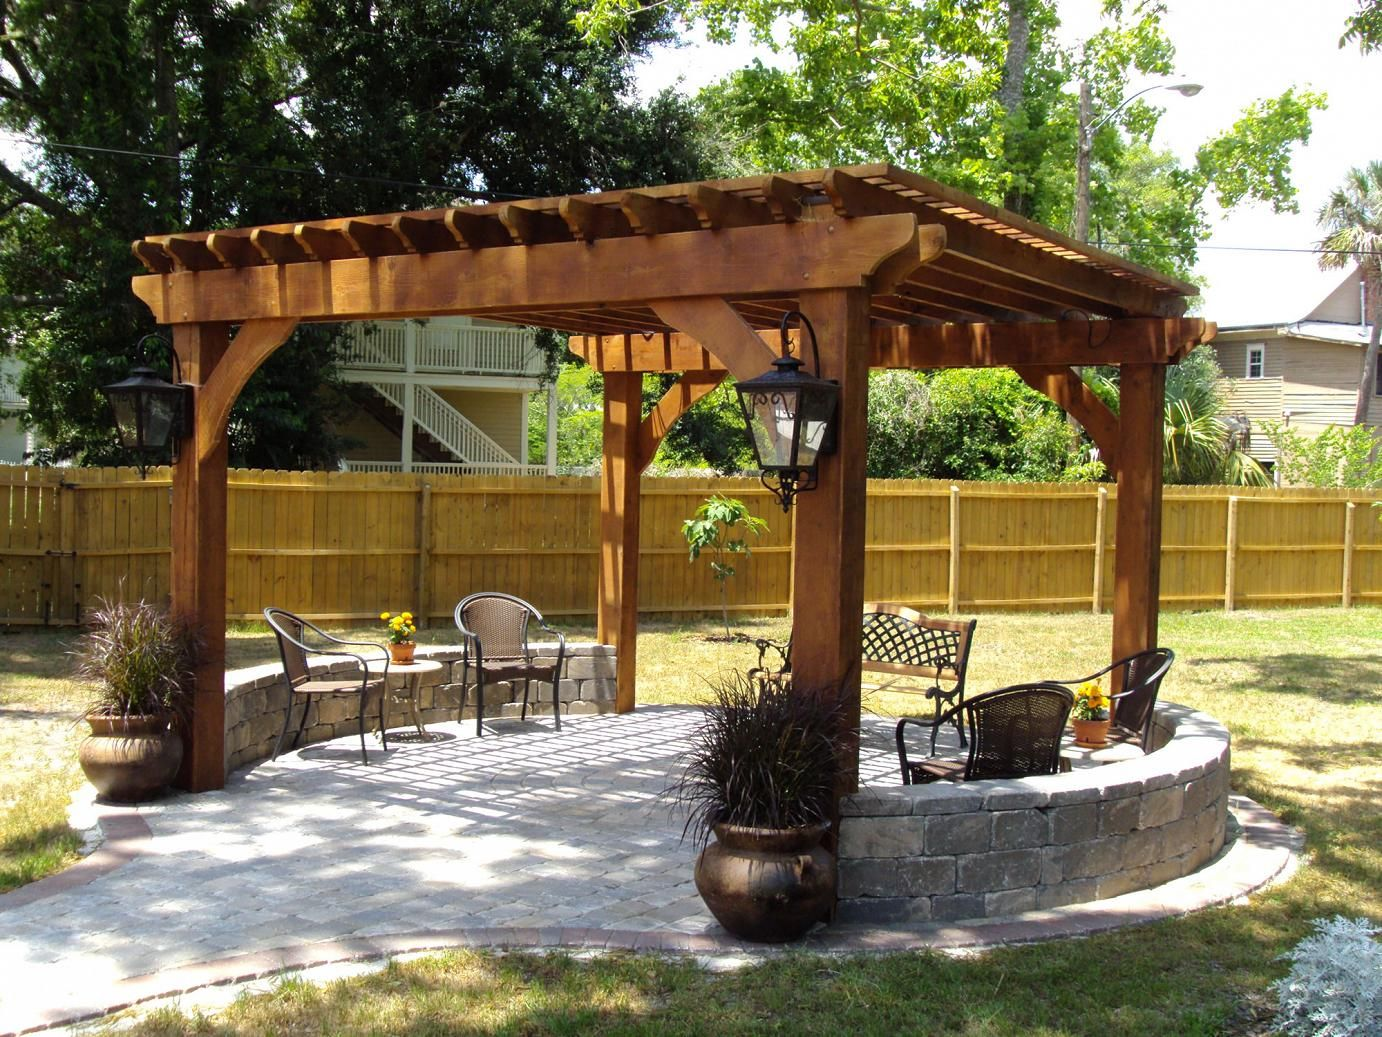 Outdoor Pergolas-Pasadena TX Landscape Designs & Outdoor Living Areas-We offer Landscape Design, Outdoor Patios & Pergolas, Outdoor Living Spaces, Stonescapes, Residential & Commercial Landscaping, Irrigation Installation & Repairs, Drainage Systems, Landscape Lighting, Outdoor Living Spaces, Tree Service, Lawn Service, and more.